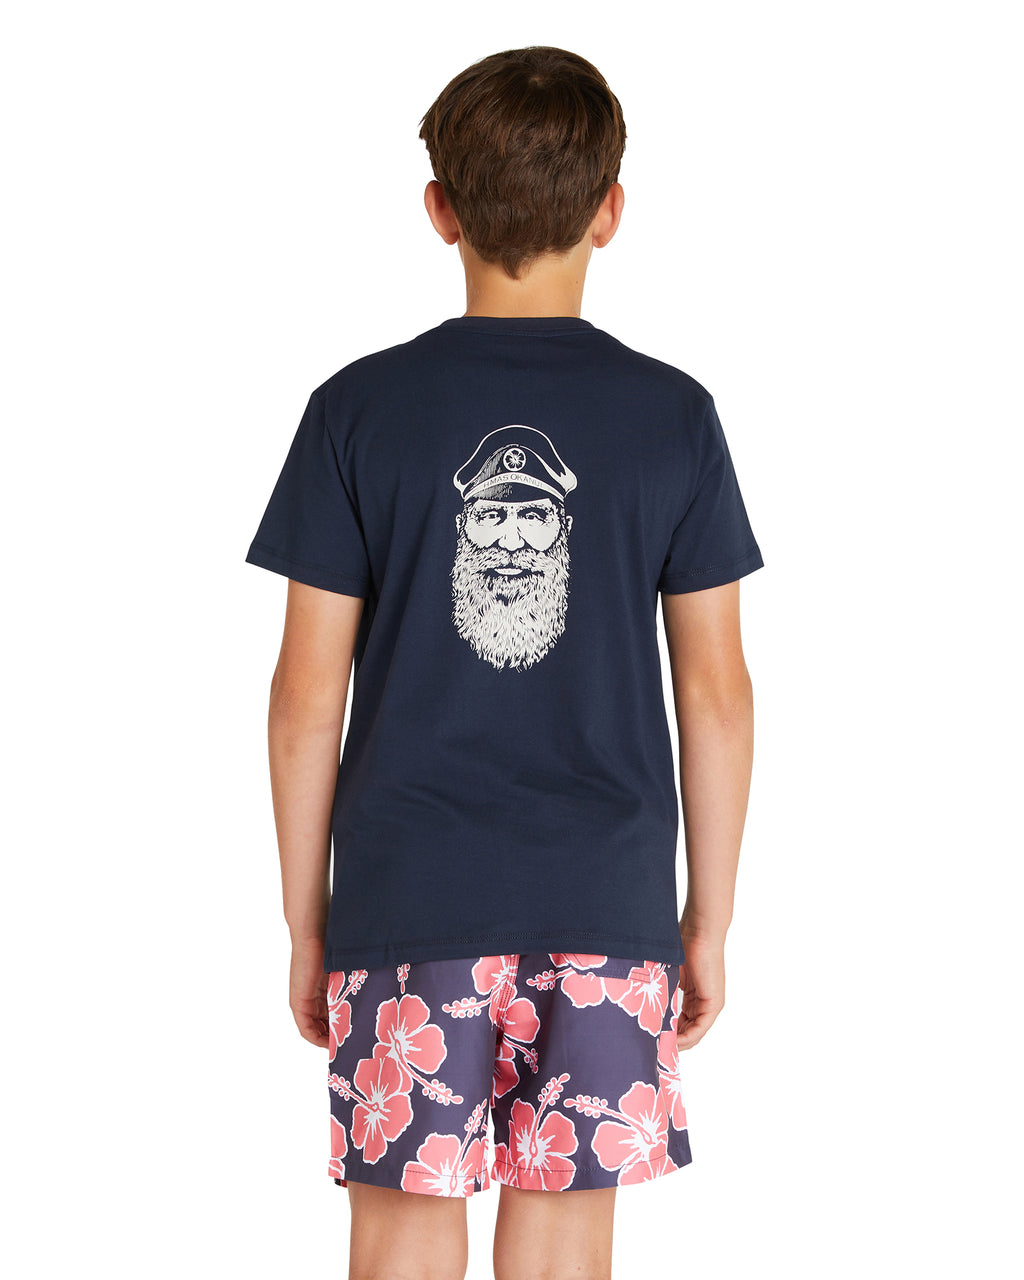 Kids - T's - Sailor - Navy